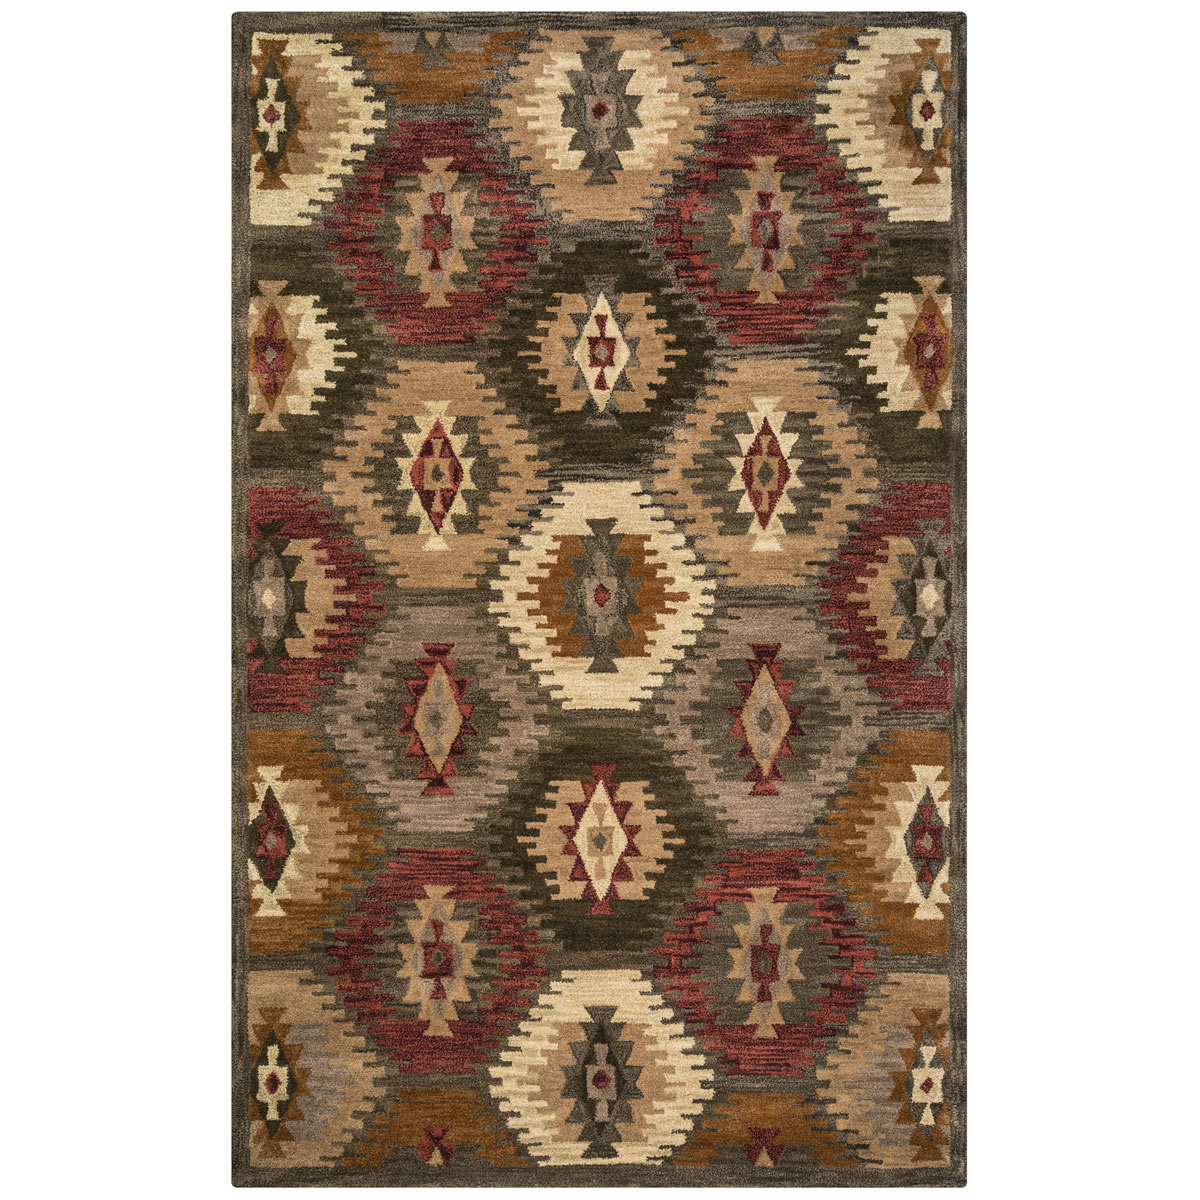 Southwest Honeycomb Rug - 8 x 10